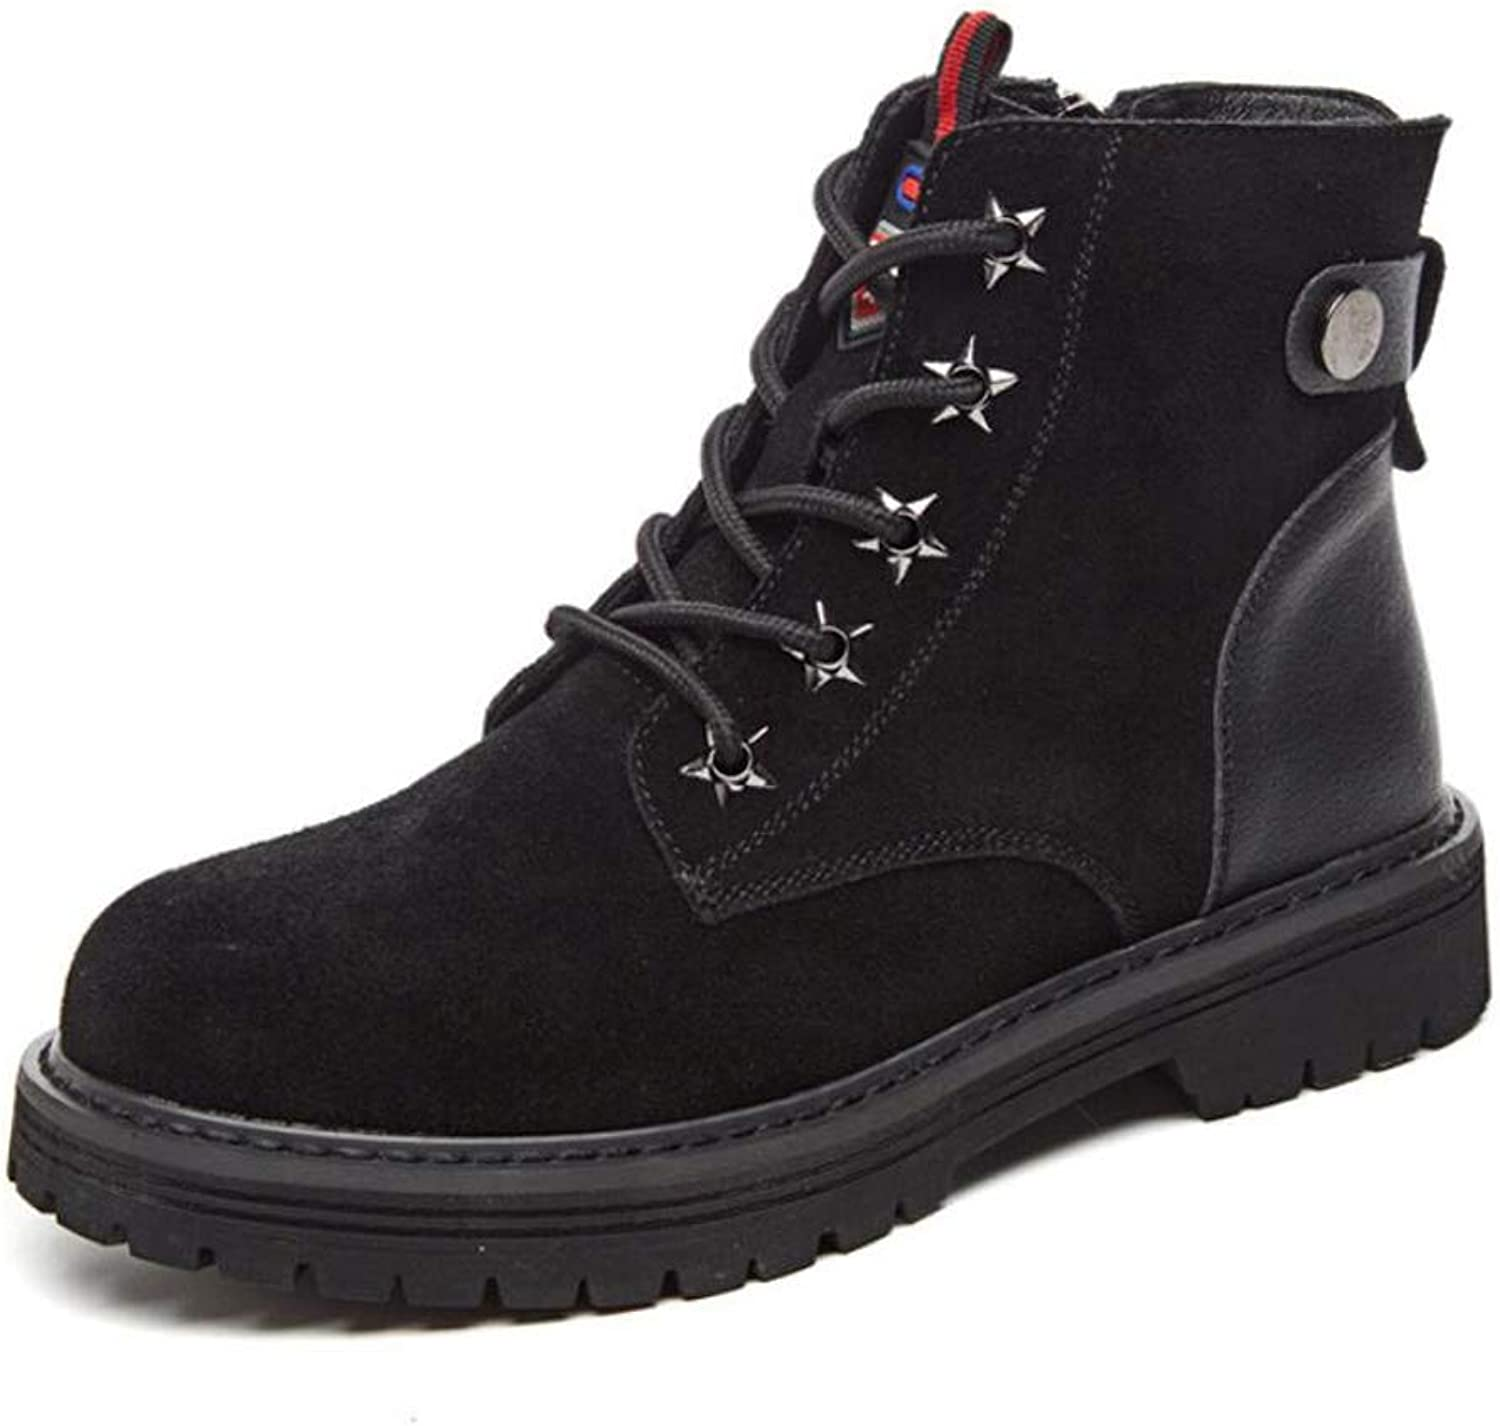 Women's Boots British Style Frosted Flat Heel Martin Boots Booties